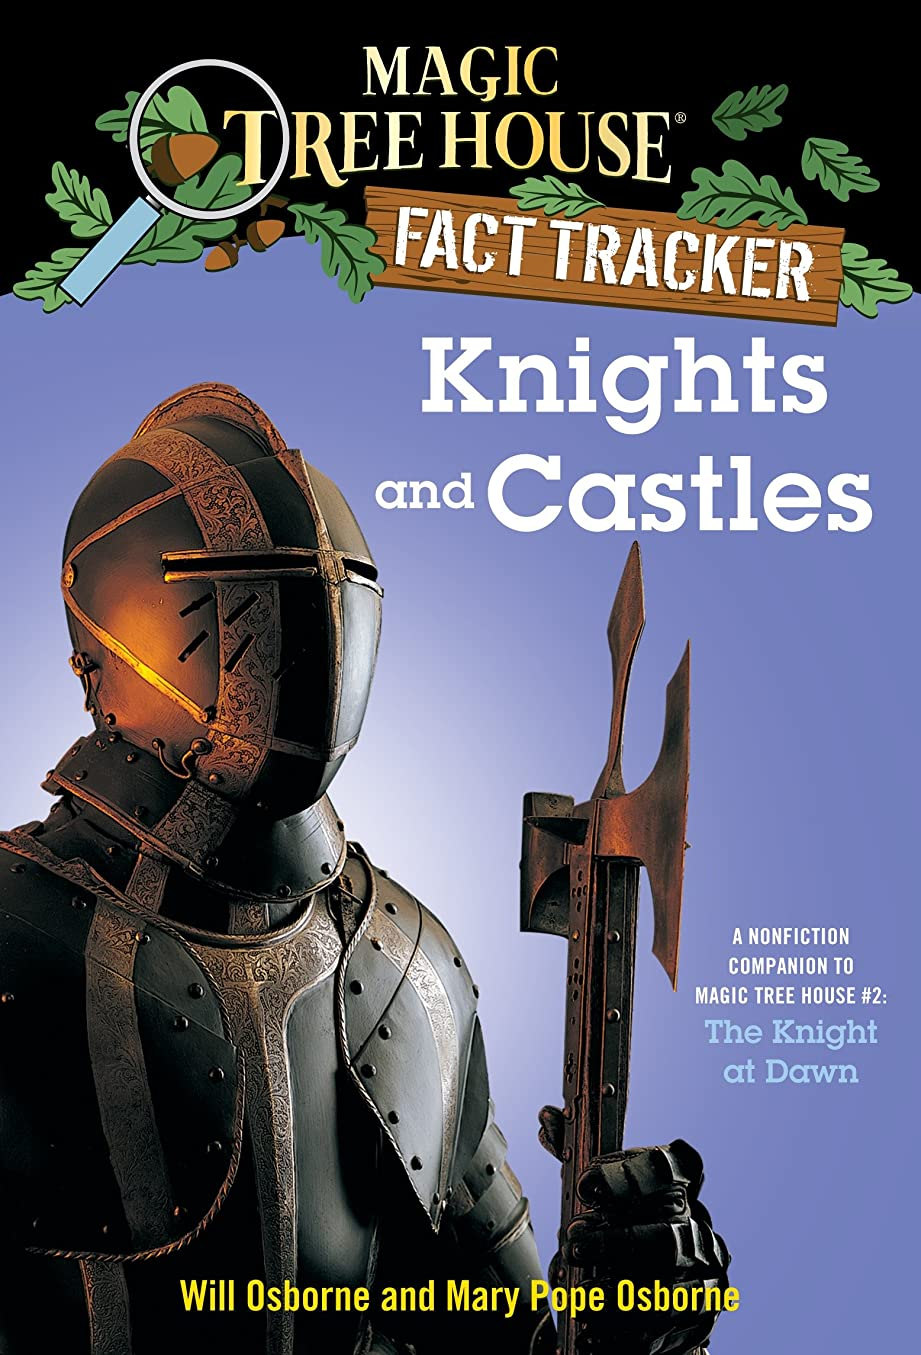 Knights and Castles: A Nonfiction Companion to Magic Tree House #2: The Knight at Dawn (Magic Tree House: Fact Trekker) (English Edition)